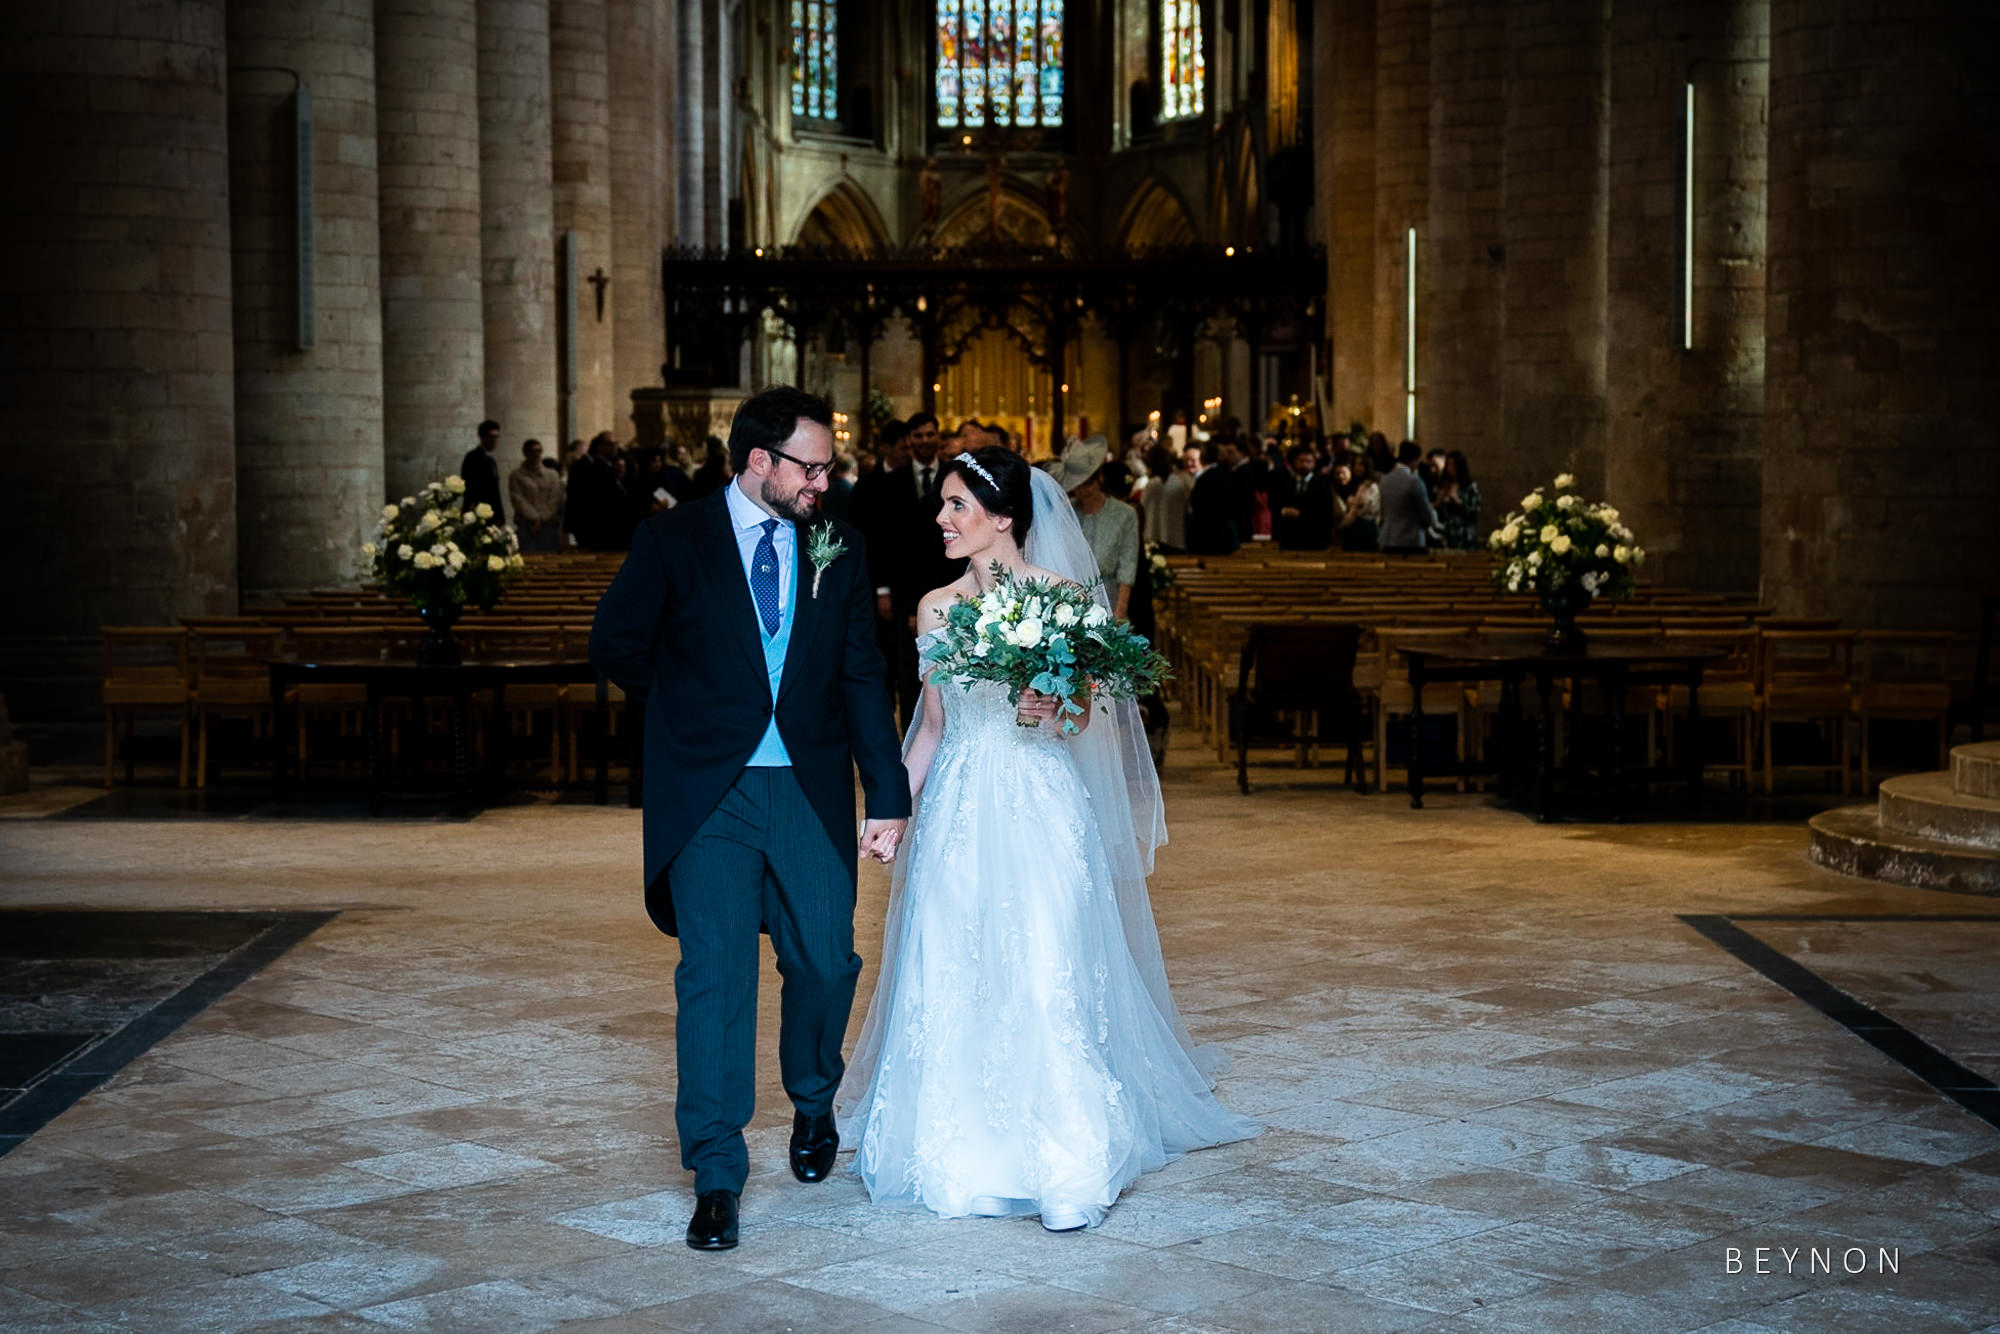 The happy couple leave the church